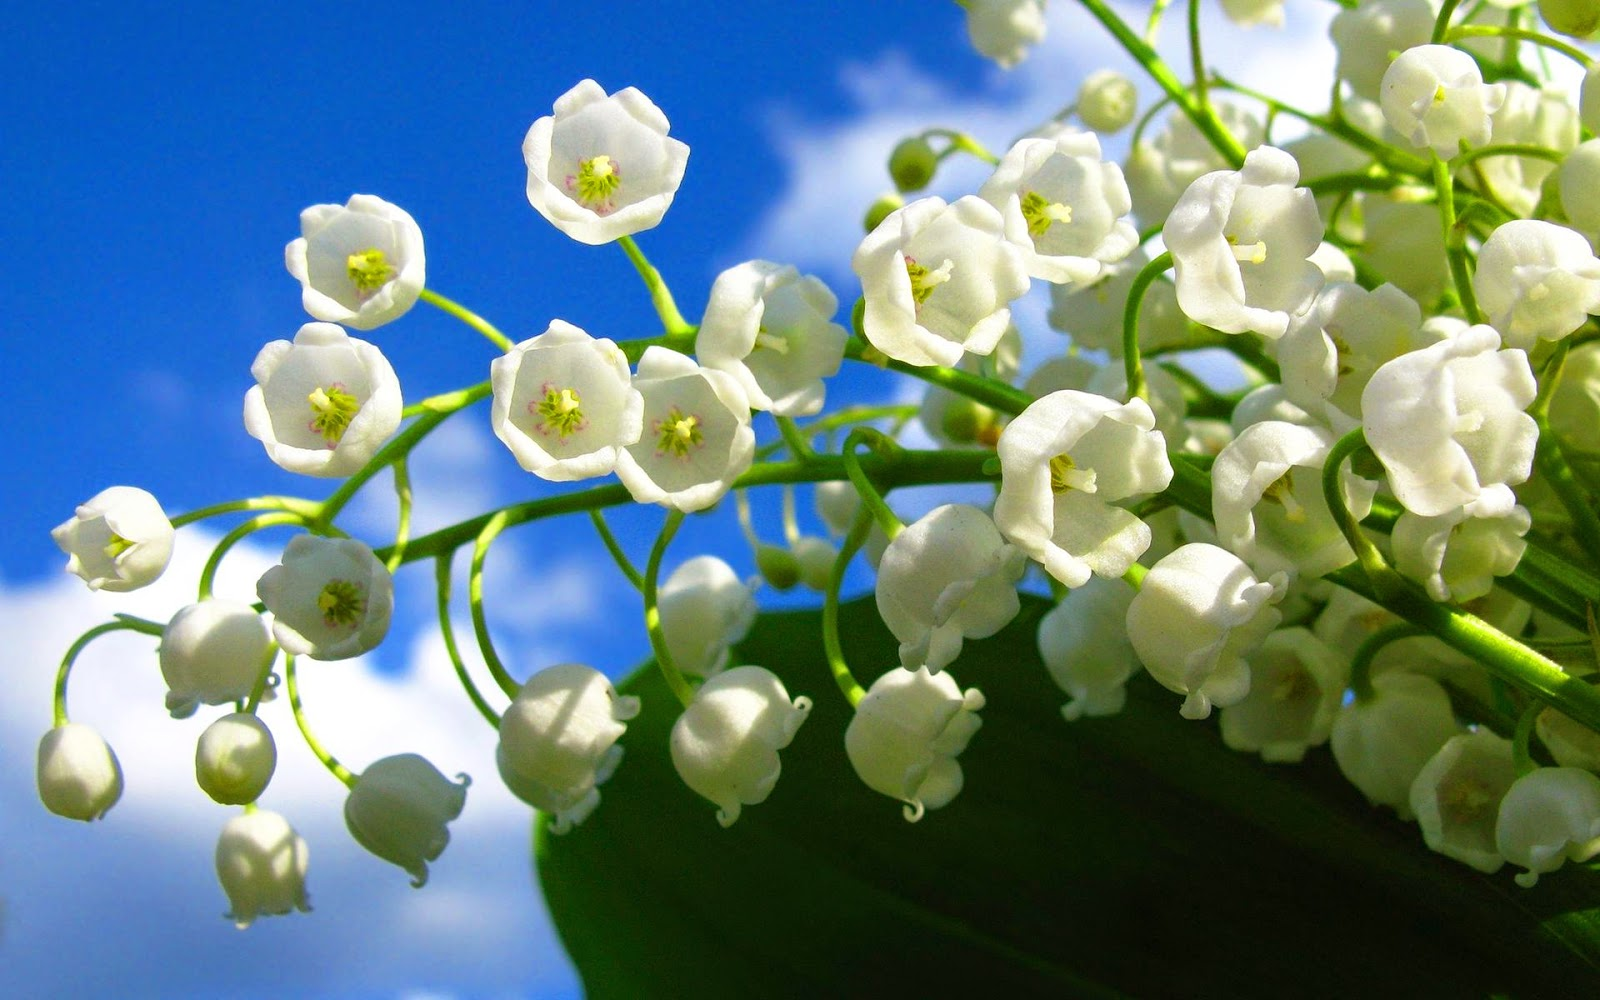 Flower Photos Most Beautiful Flowers In The World Lily Of Valley